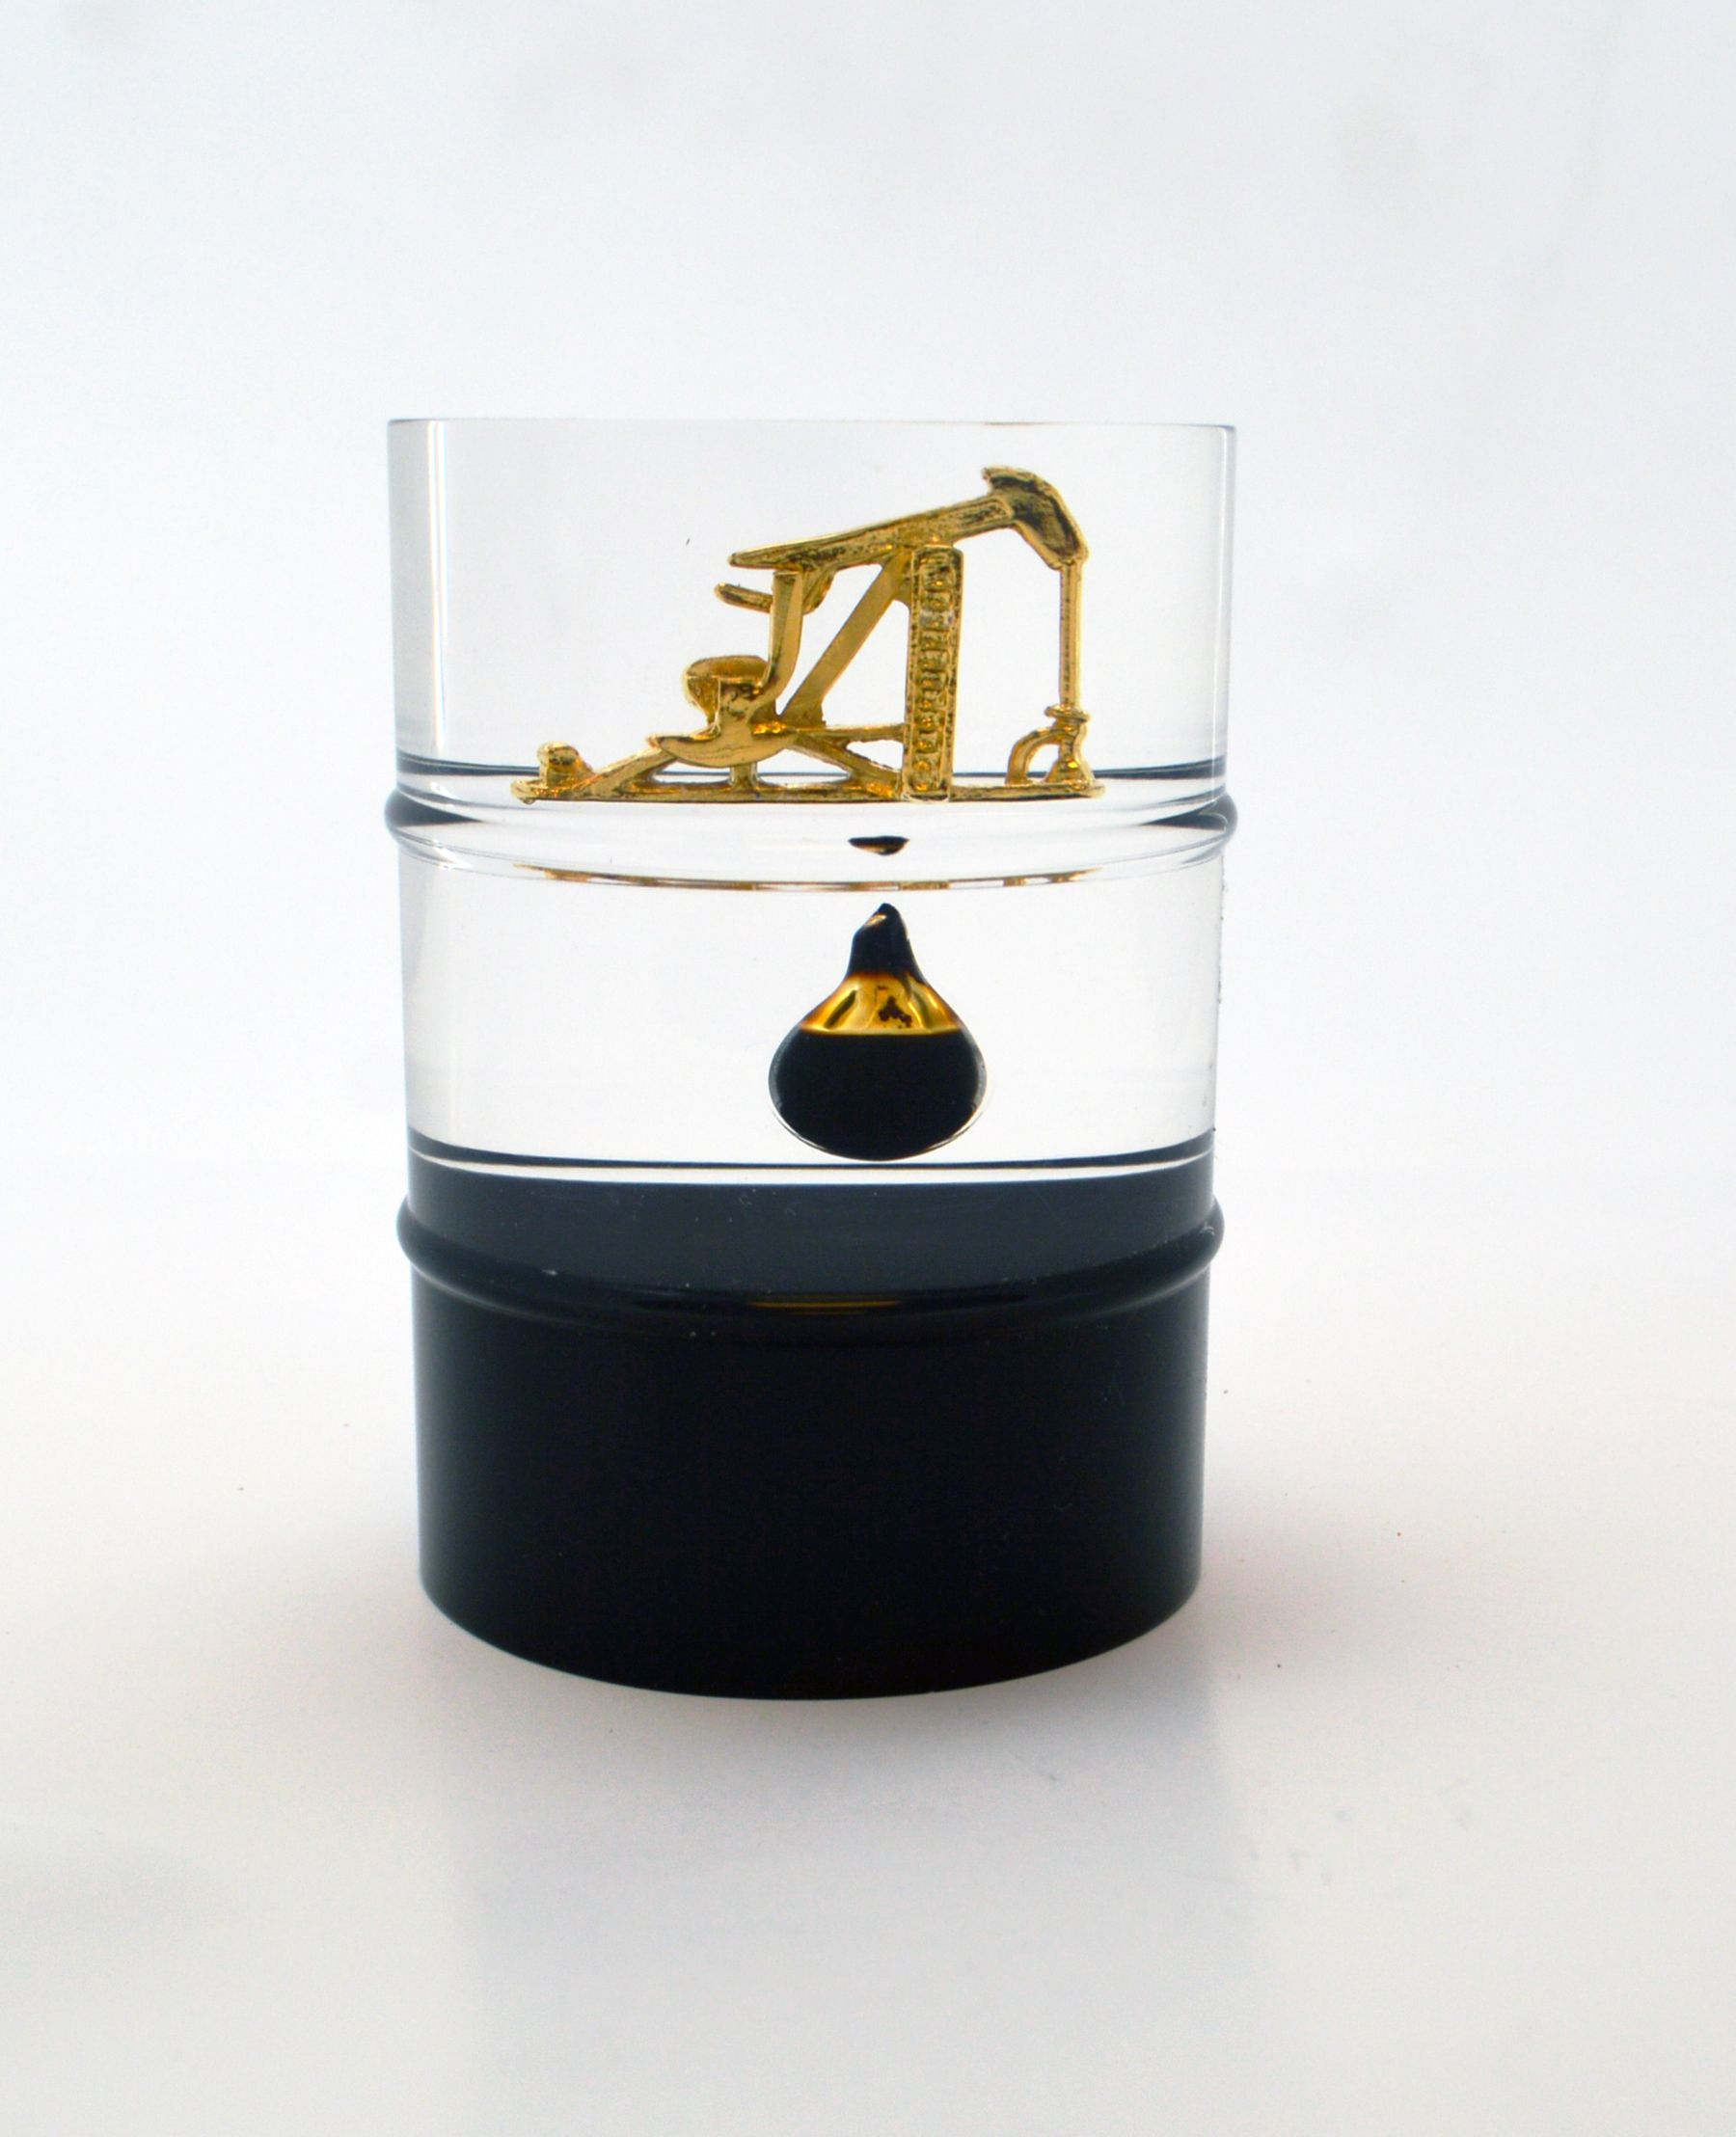 Lucite 3D Oil Barrel with metal cast of pump jack, an oil drop, and a black bottom. Lucite financial deal toys, embedments, and acrylic awards to promote your deal, announcement, company, or event. http://www.lucitetombstones.com/lucite_idea_gallery.htm 401-841-5646 #luciteembedments #dealtoys #lucitetombstones #lucite